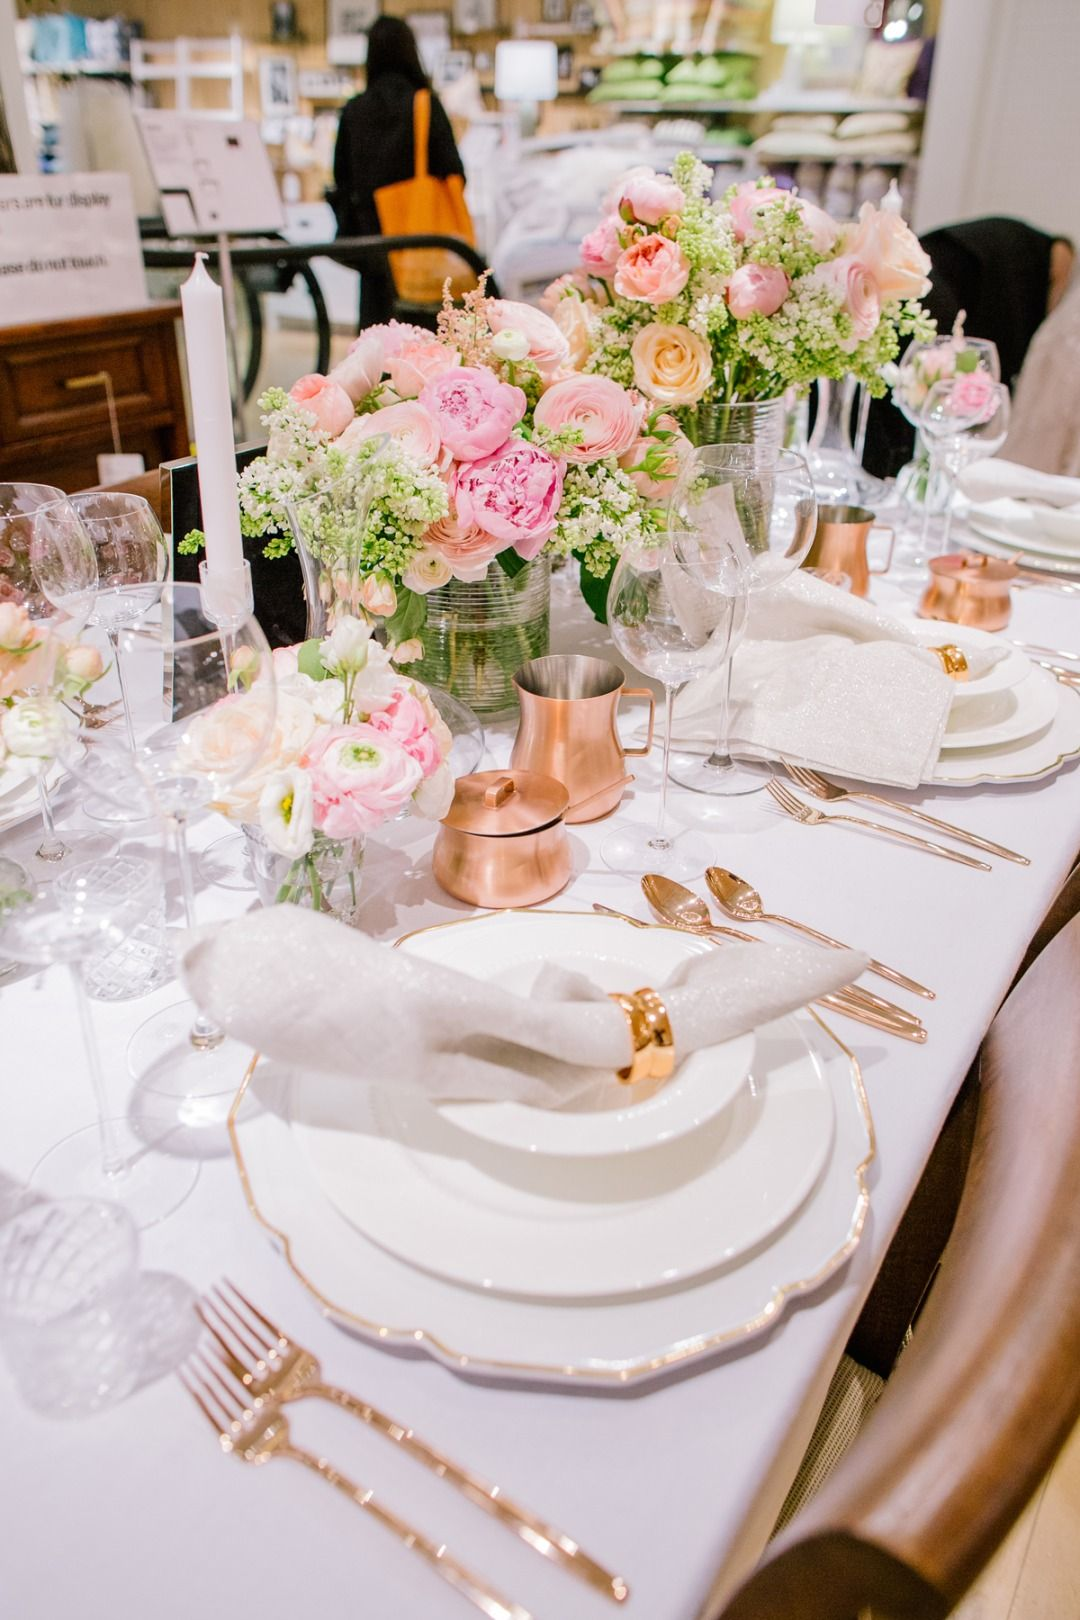 Hot Off Bridal Fashion Week Crate And Barrel Theknot Threw The Ultimate